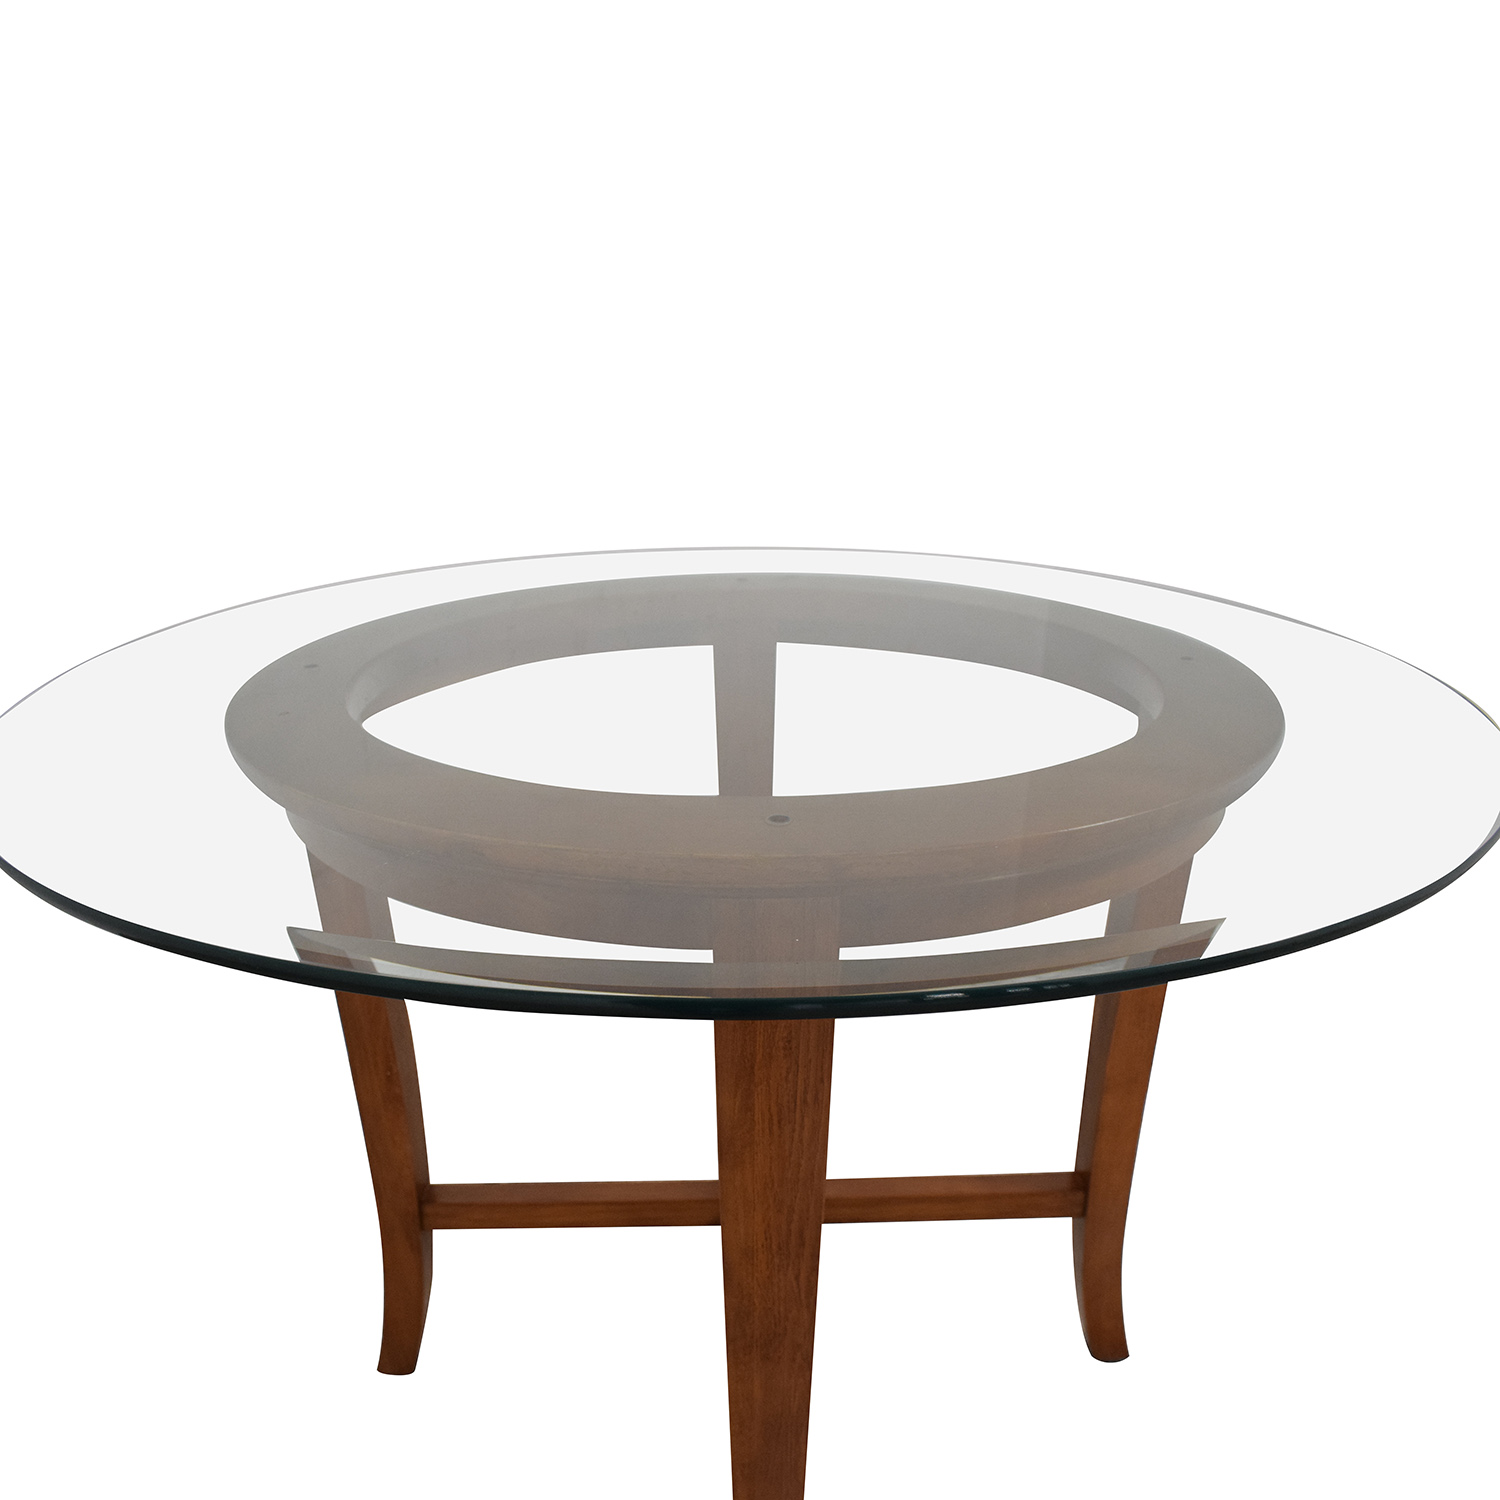 Crate & Barrel Halo Round Dining Table / Tables